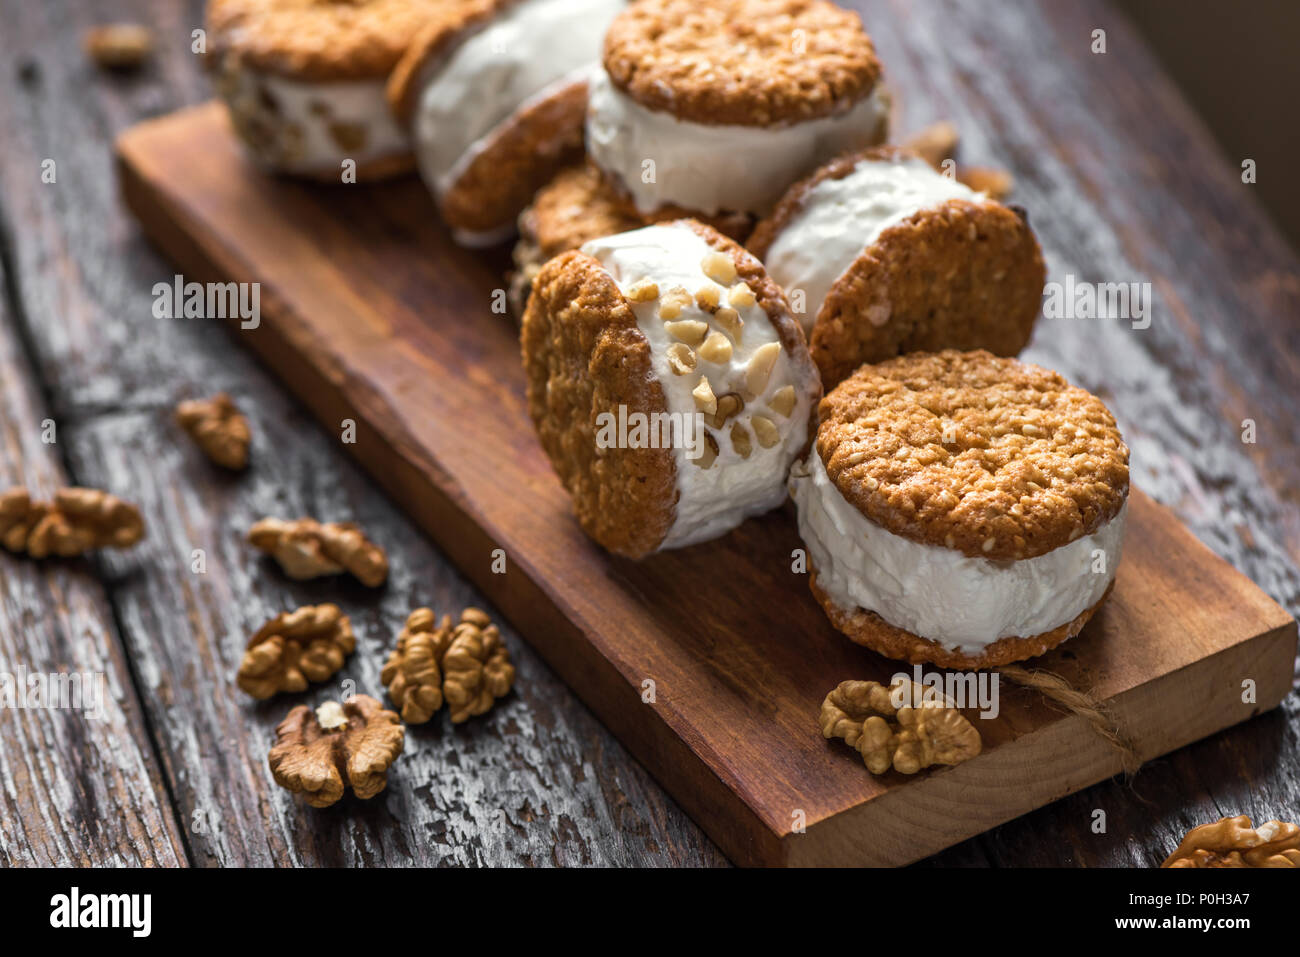 Ice cream sandwiches with nuts and wholegrain cookies. Homemade vanilla ice cream sandwiches on dark wooden background. - Stock Image